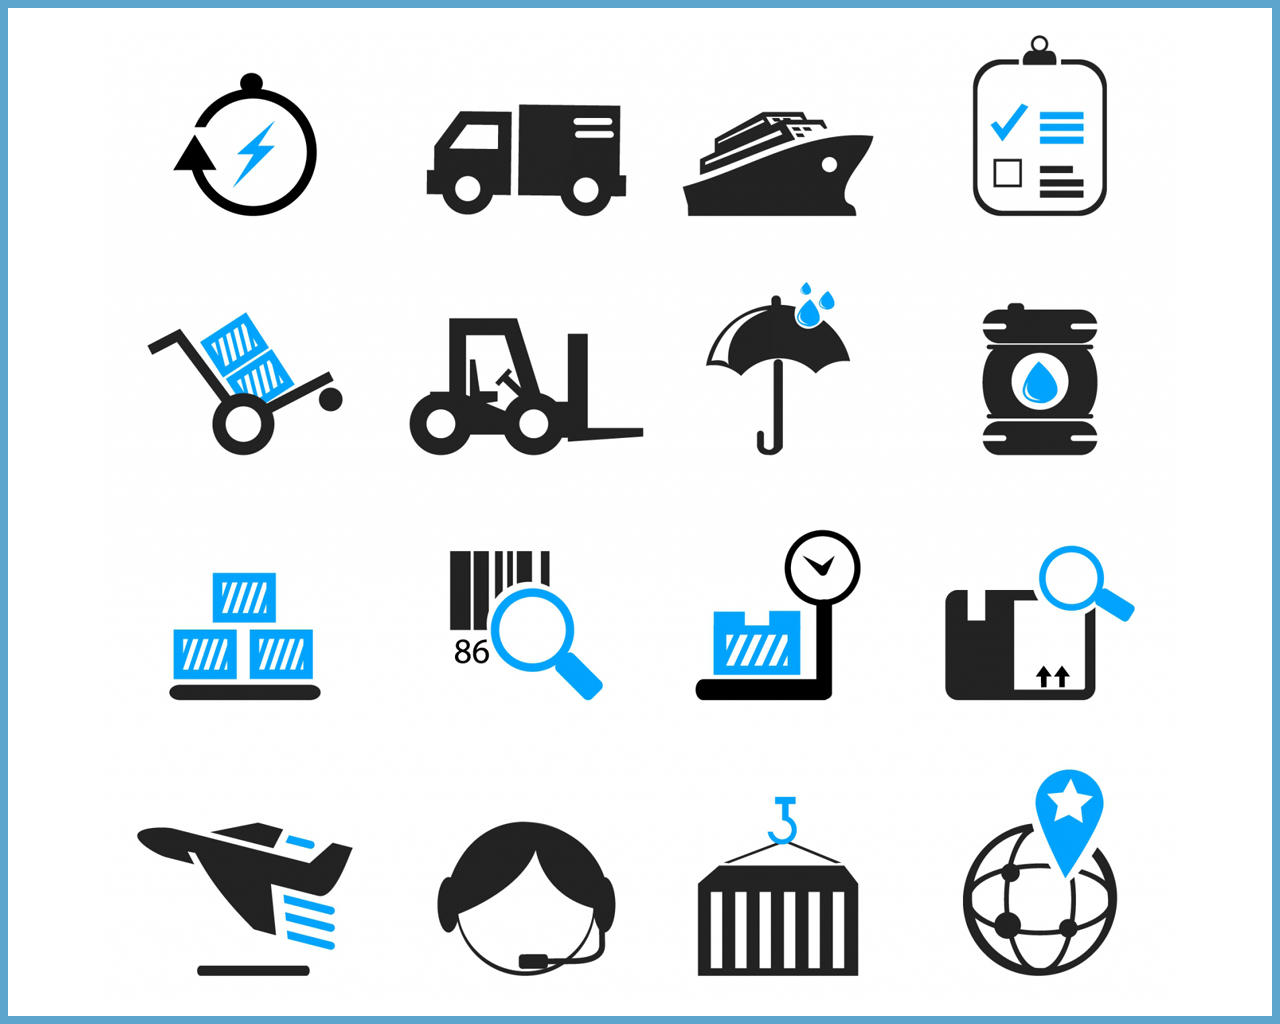 Professional FLAT Icon Set Design by Creative_S2dio - 102928